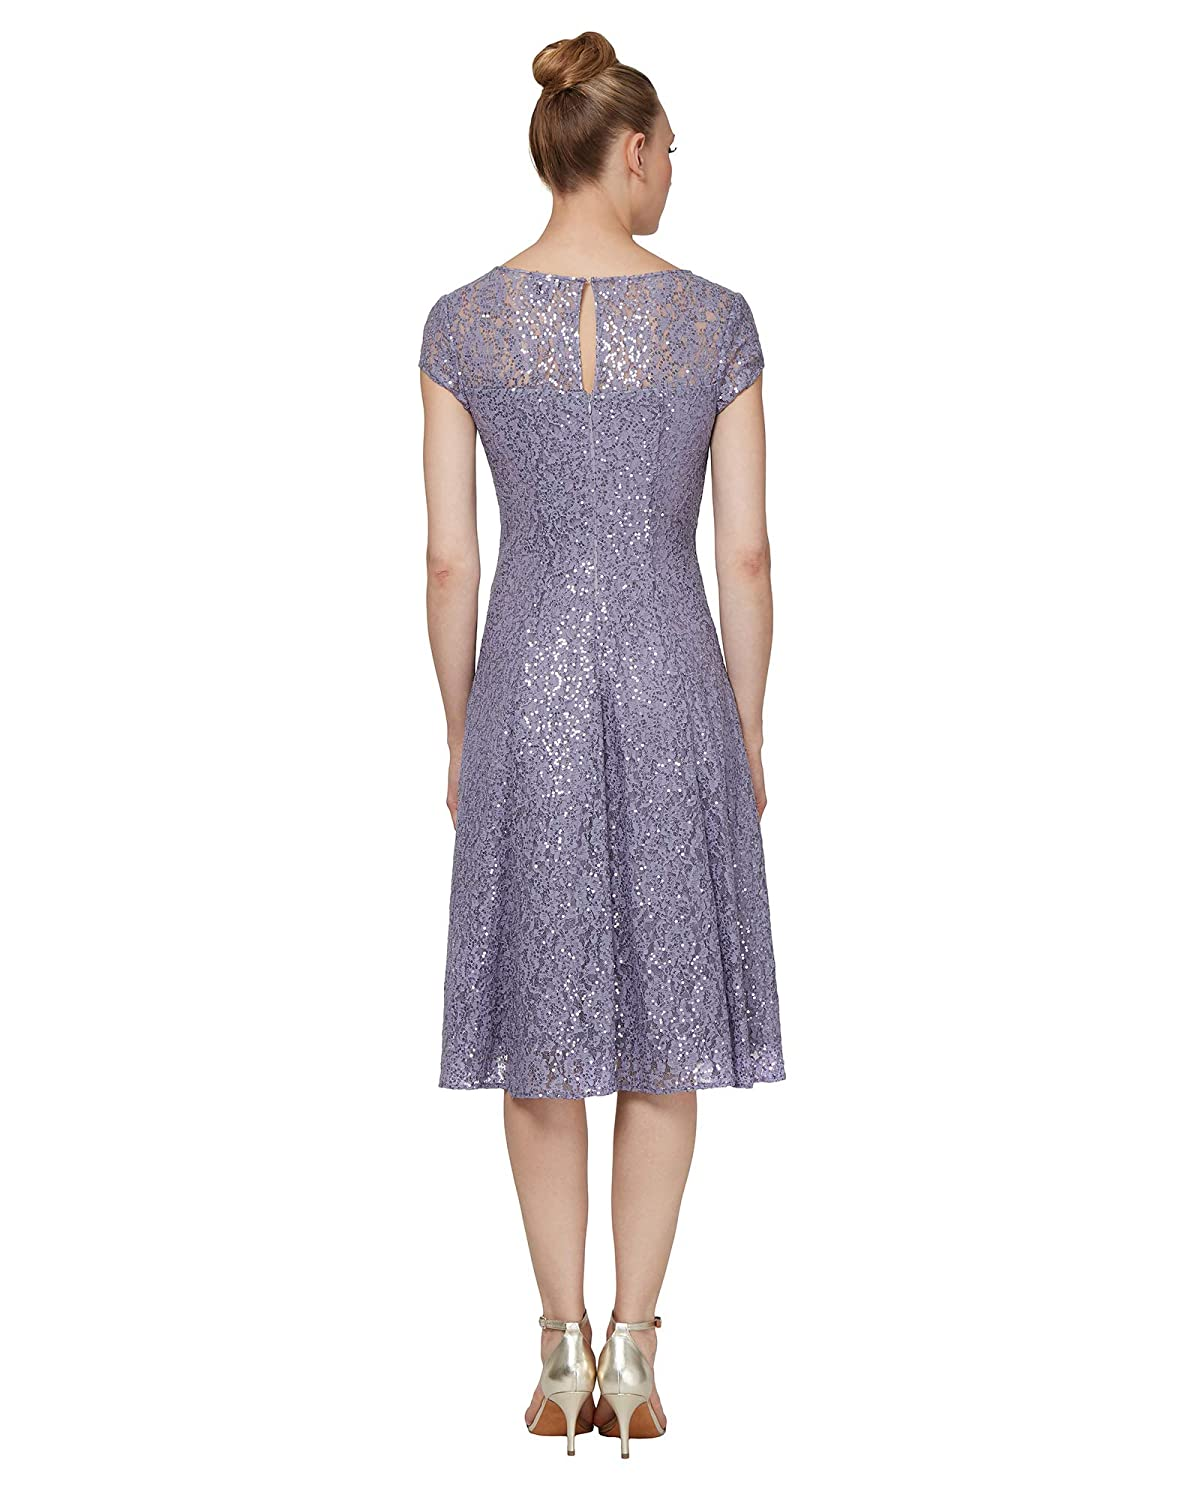 9a0c4cc8a0 Amazon.com  S.L. Fashions Women s Lace and Sequin Fit and Flare Dress   Clothing